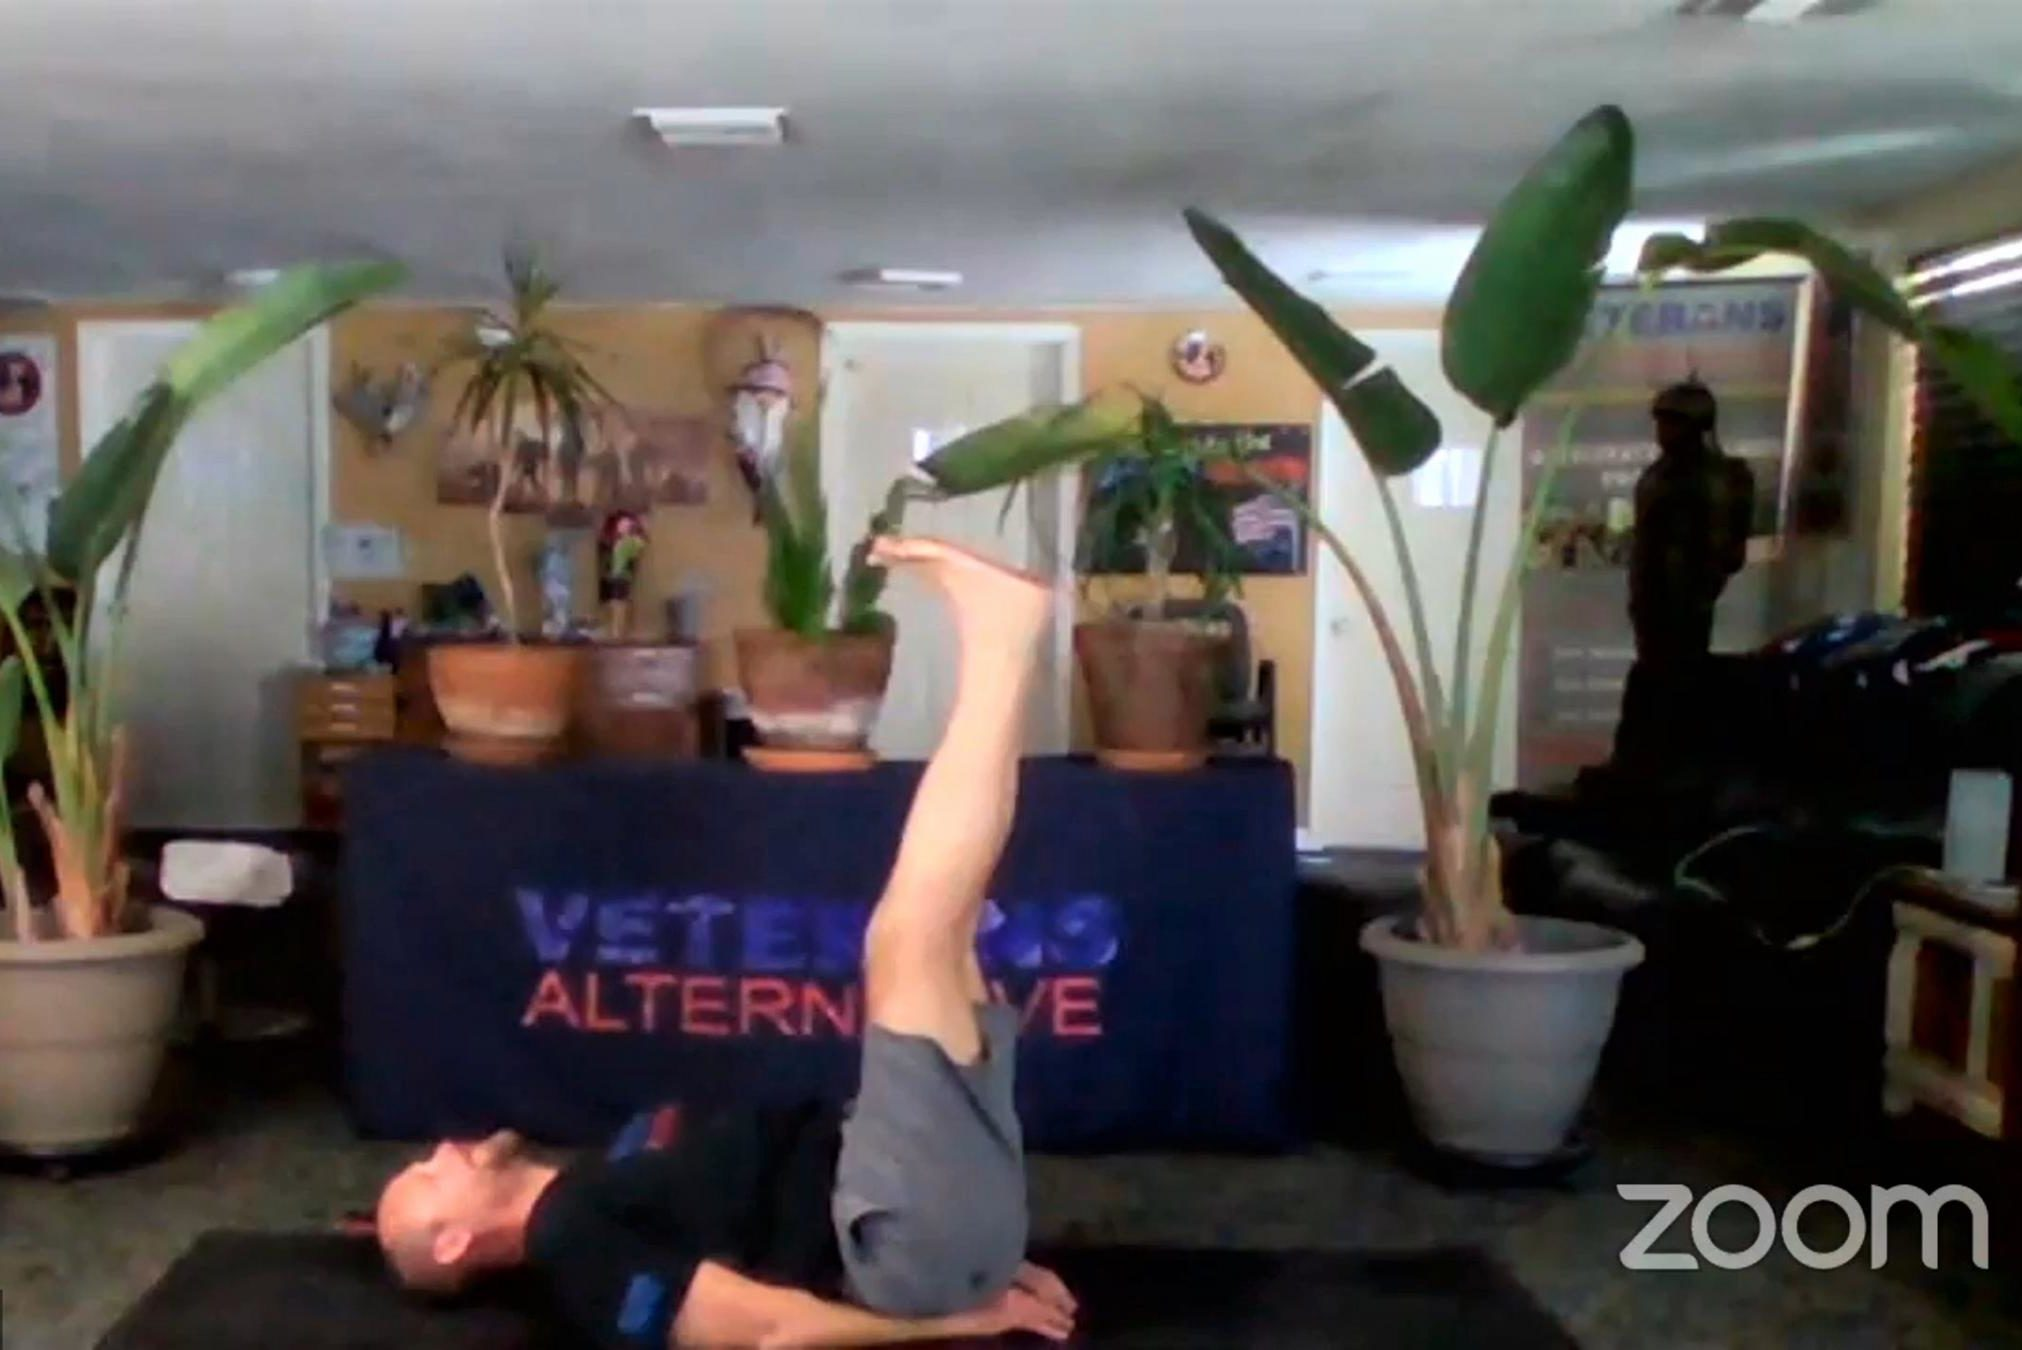 Yoga instructor Forest Spall with the Tampa-area nonprofit group Veterans Alternative hosts a virtual meditation session on the video chat service Zoom.